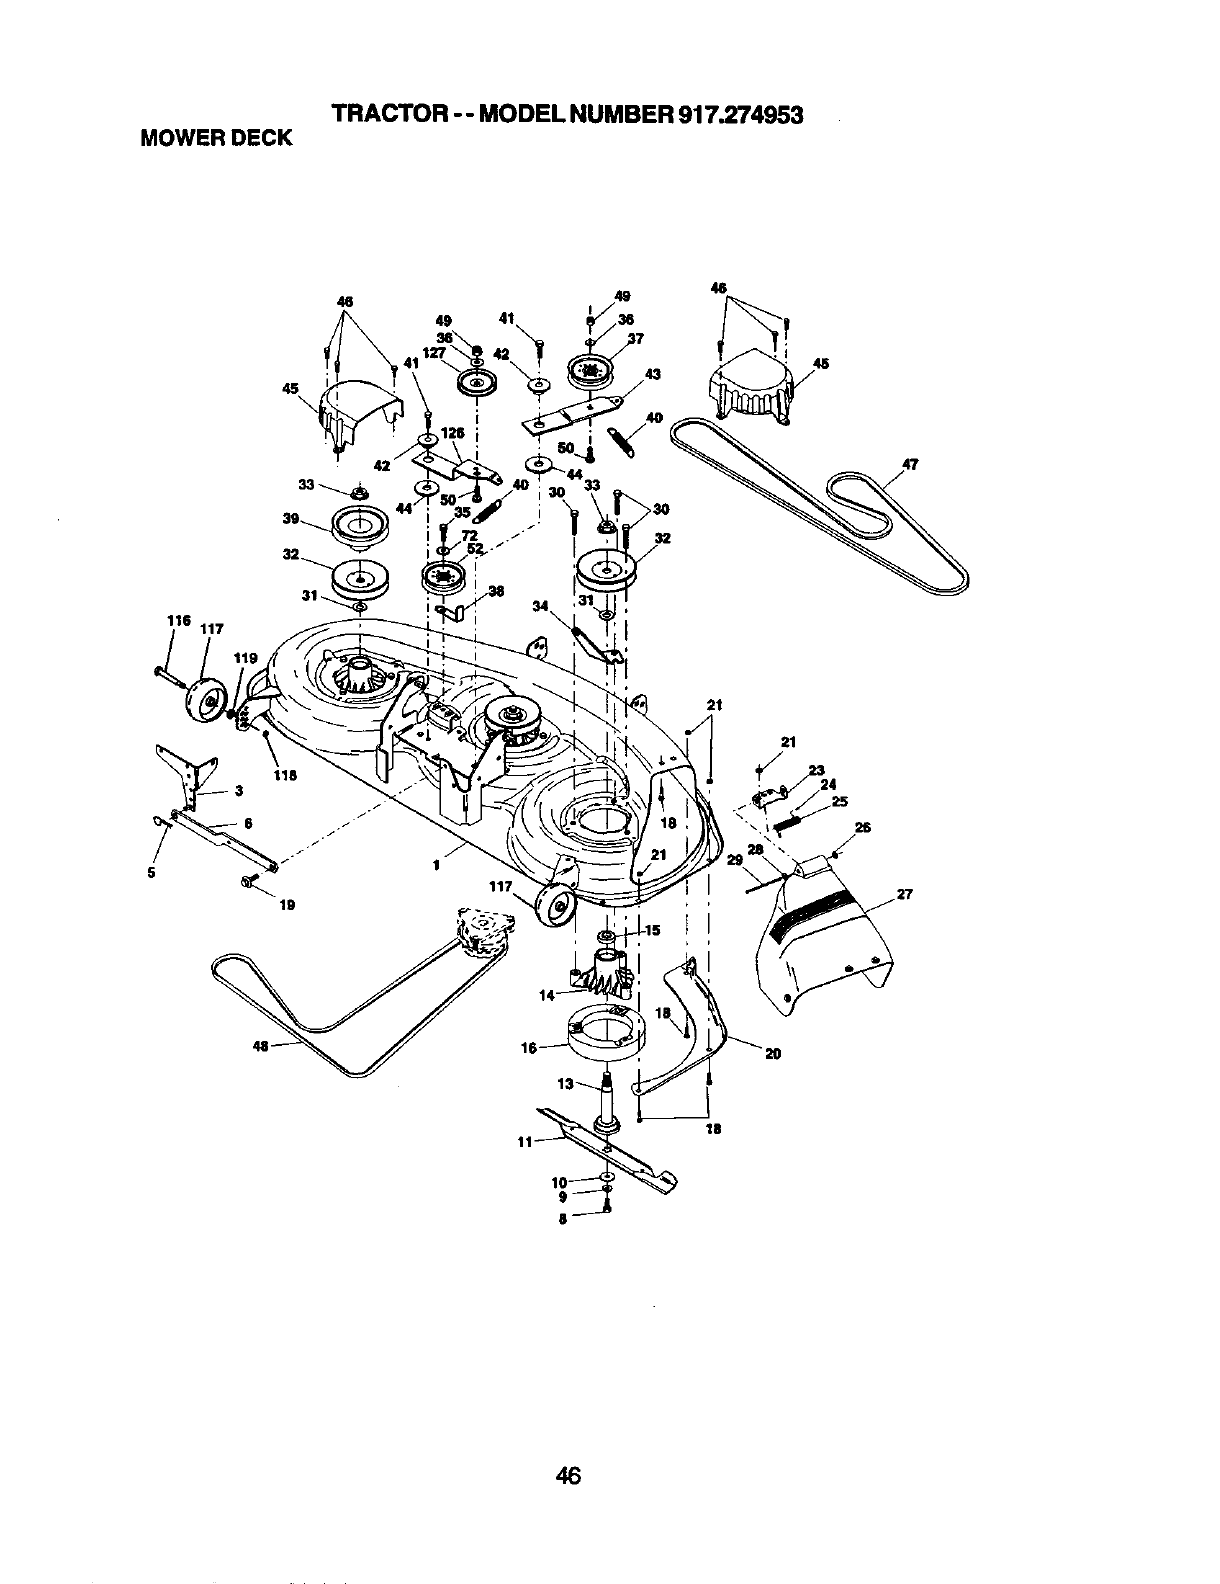 Page 46 of Craftsman Lawn Mower 917.274953 User Guide